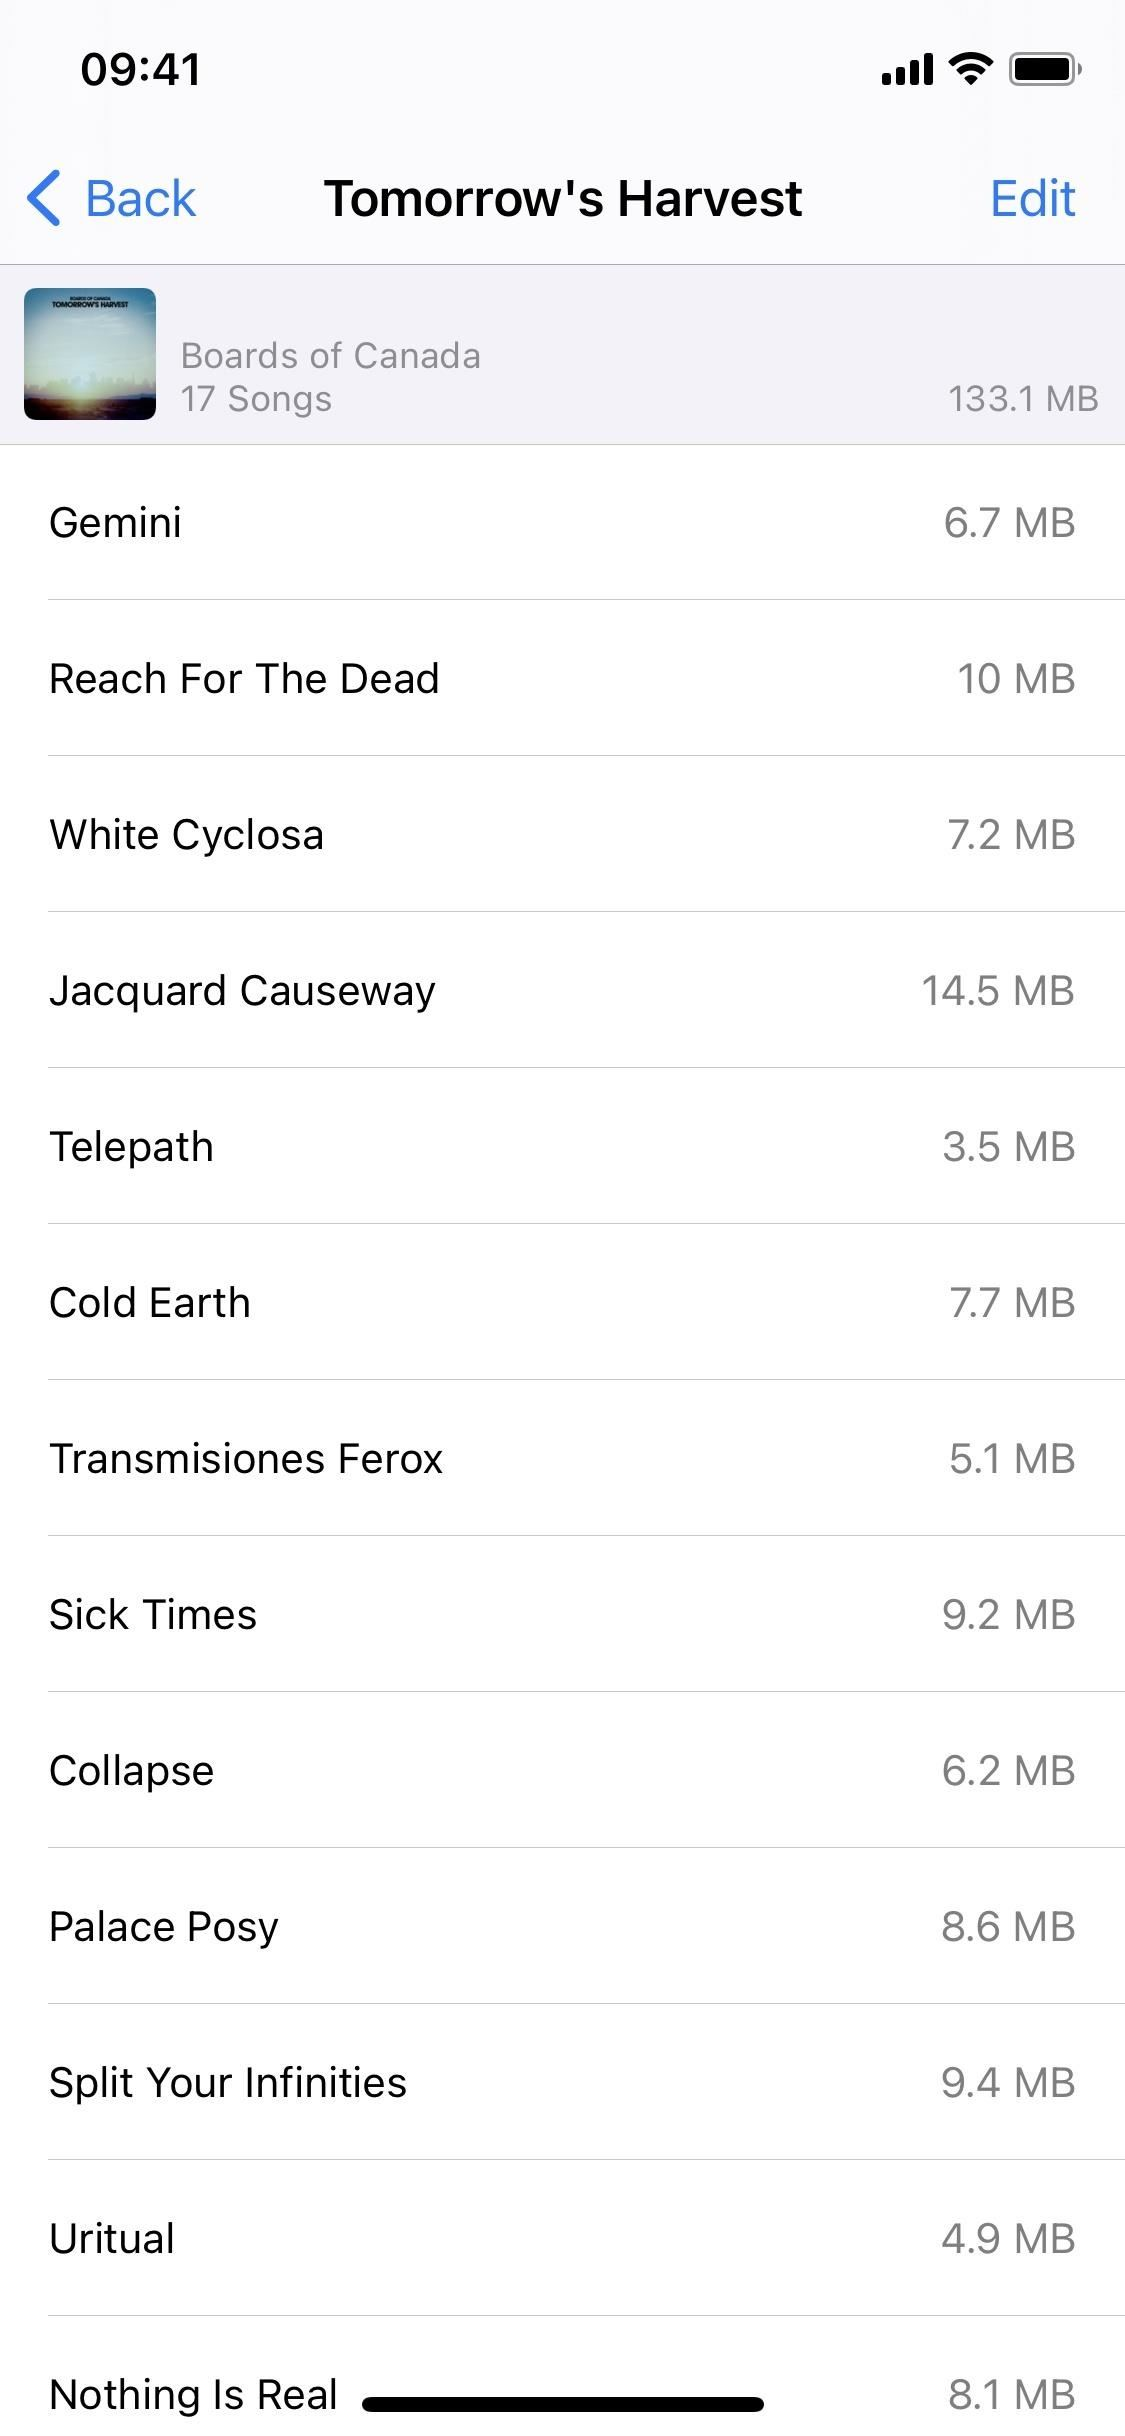 How to Easily View & Delete Music That's Taking Up Storage Space on Your iPhone